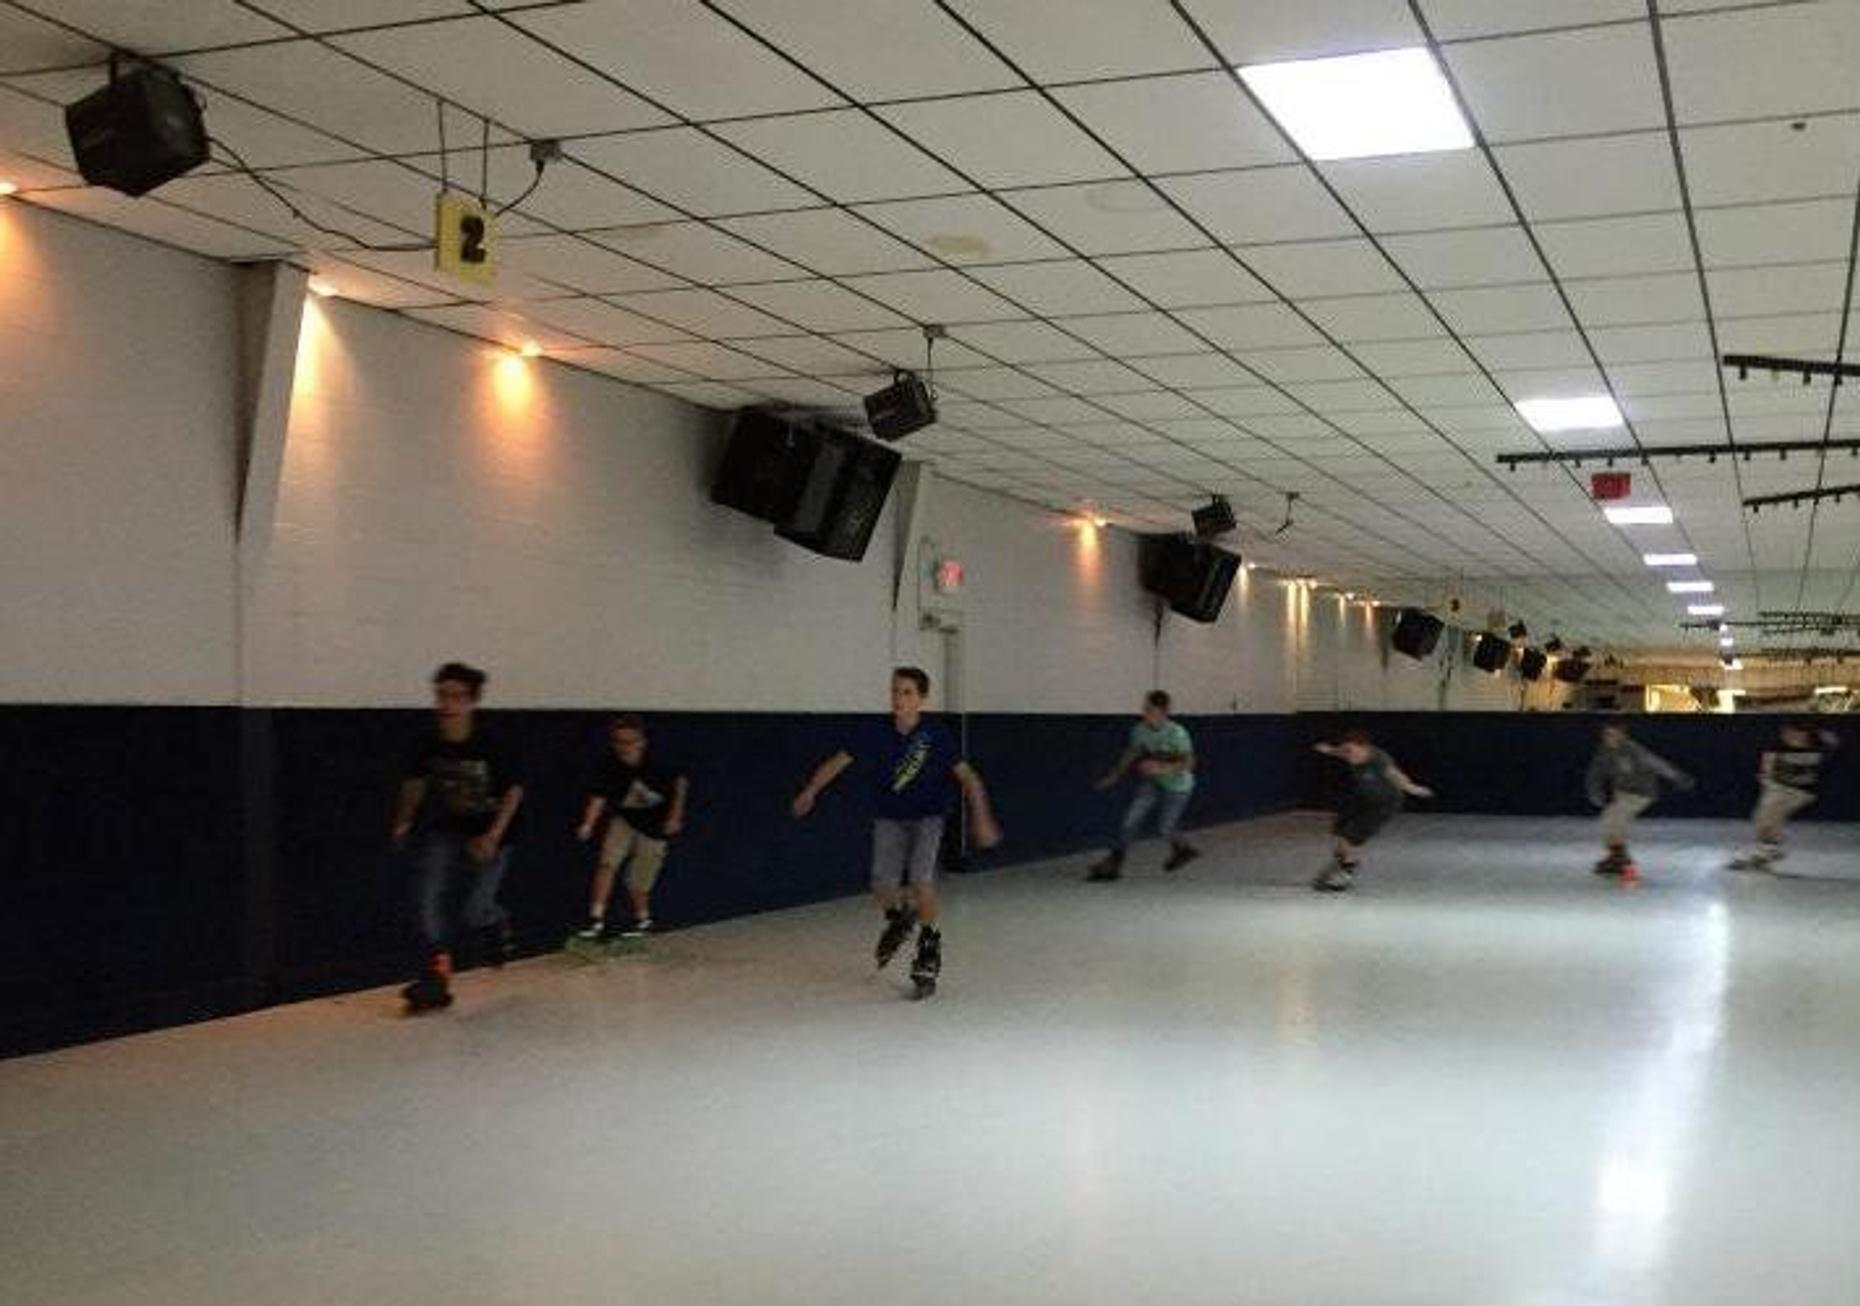 Deluxe Skating Session in Hutchinson Kansas